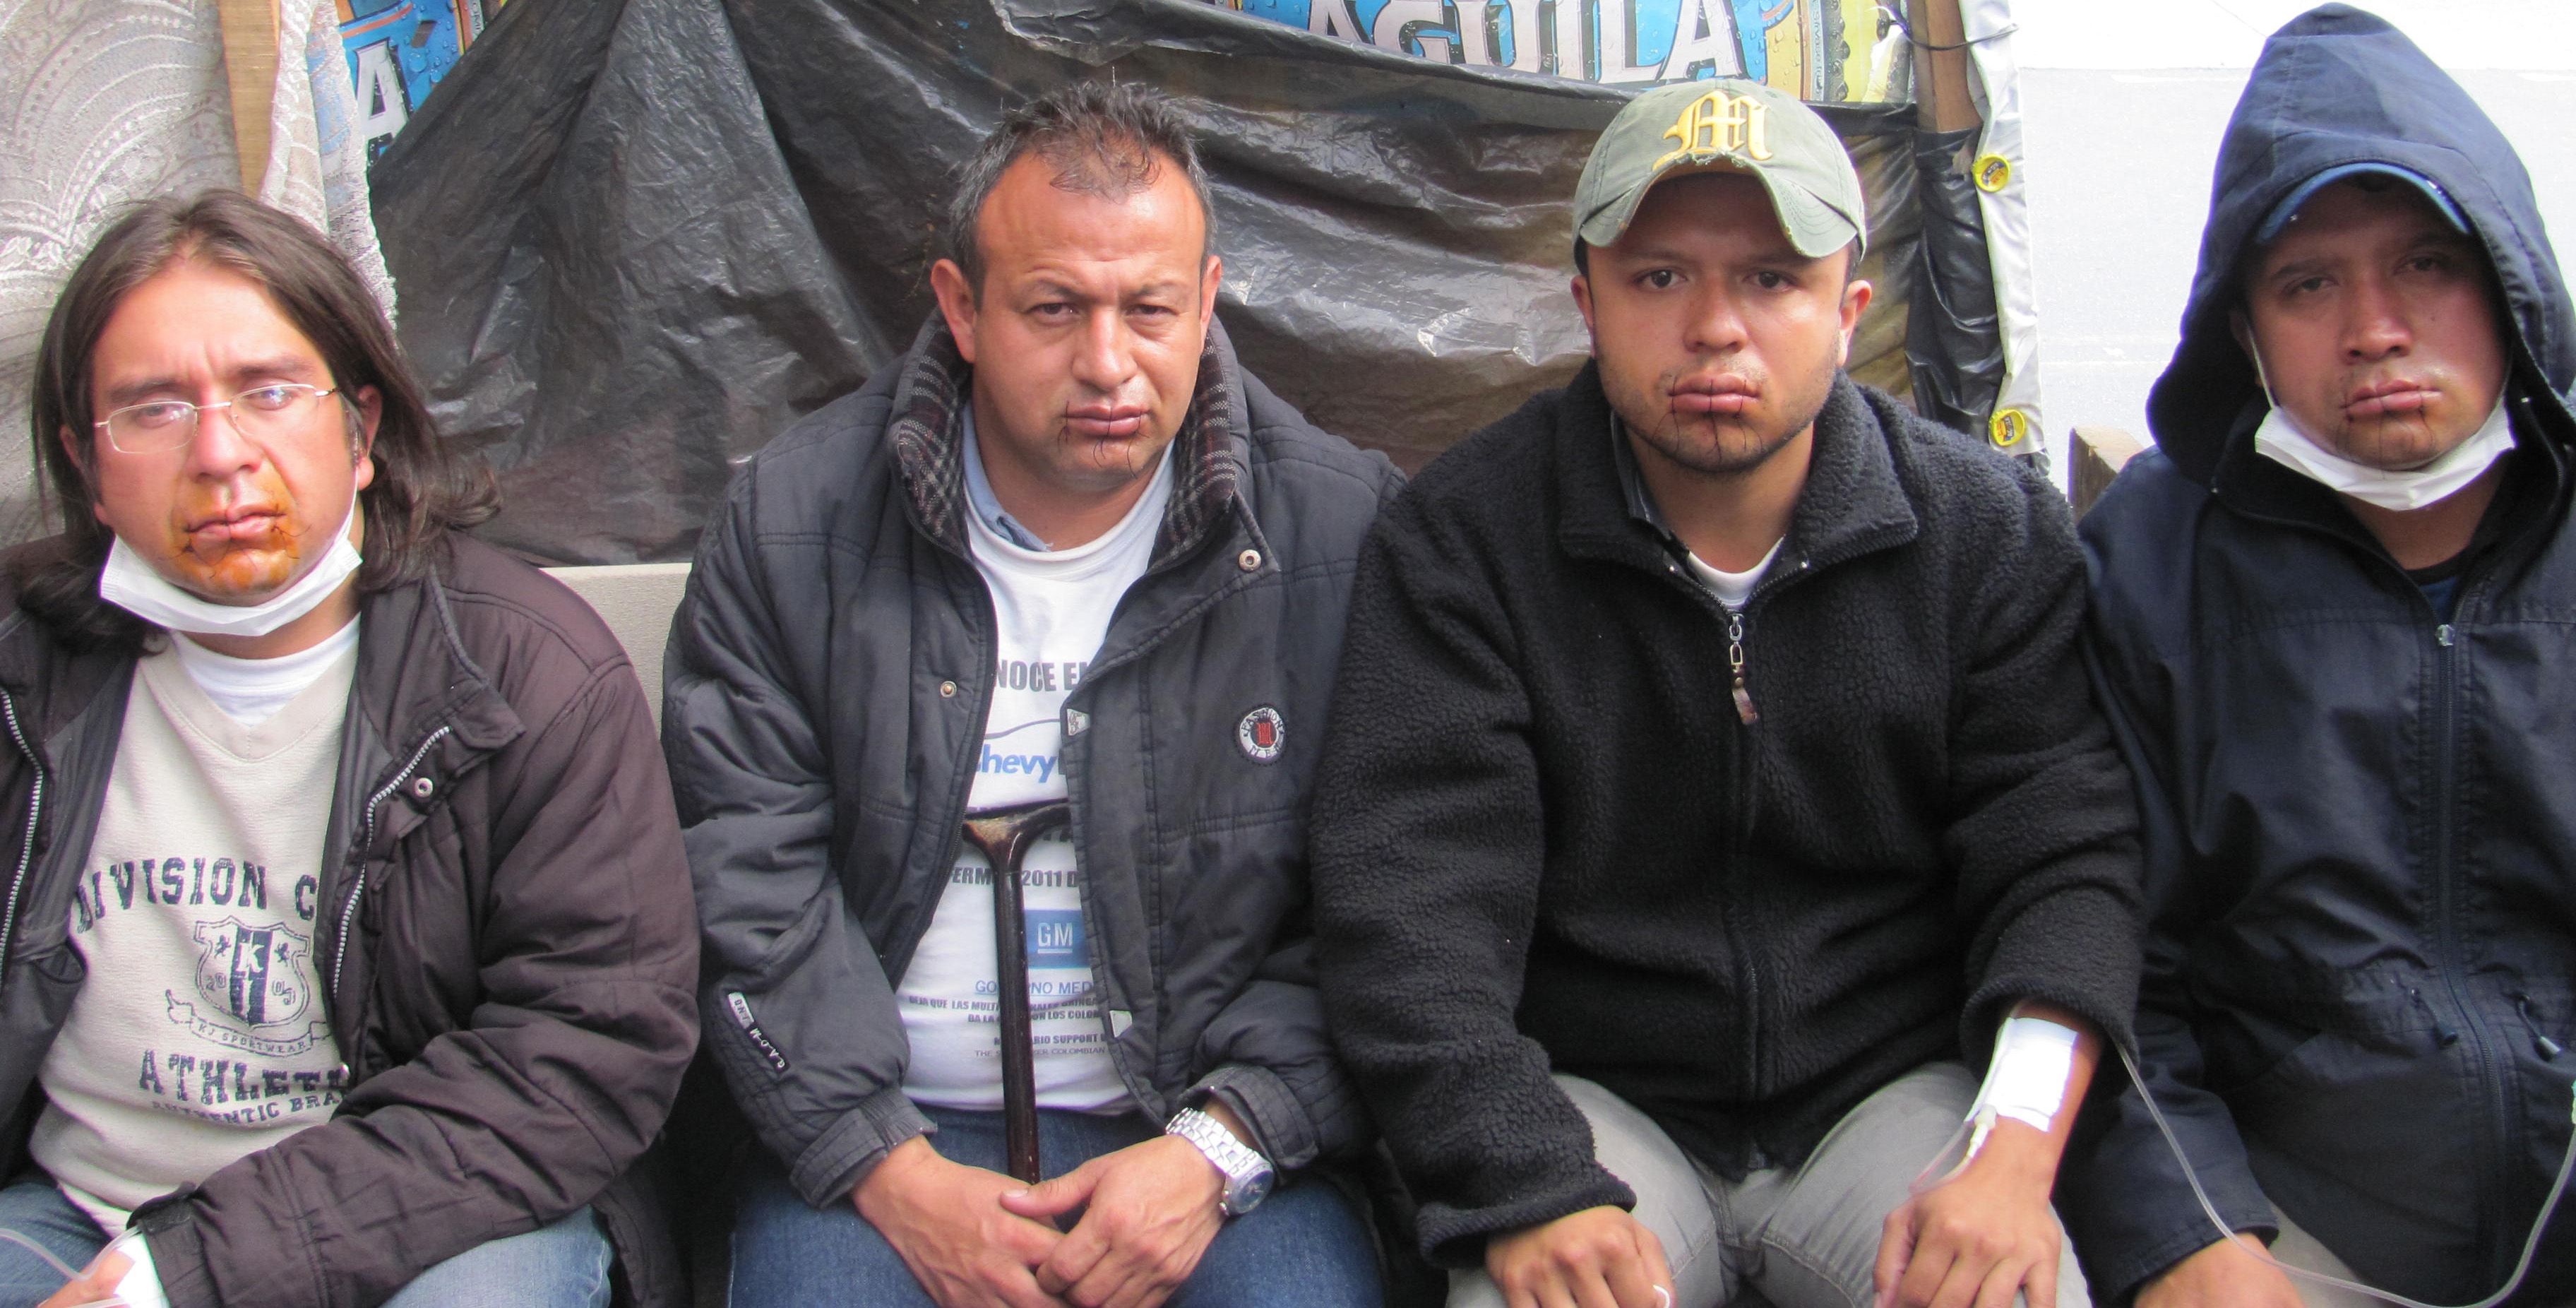 COLOMBIAN GM WORKERS ON HUNGER STRIKE